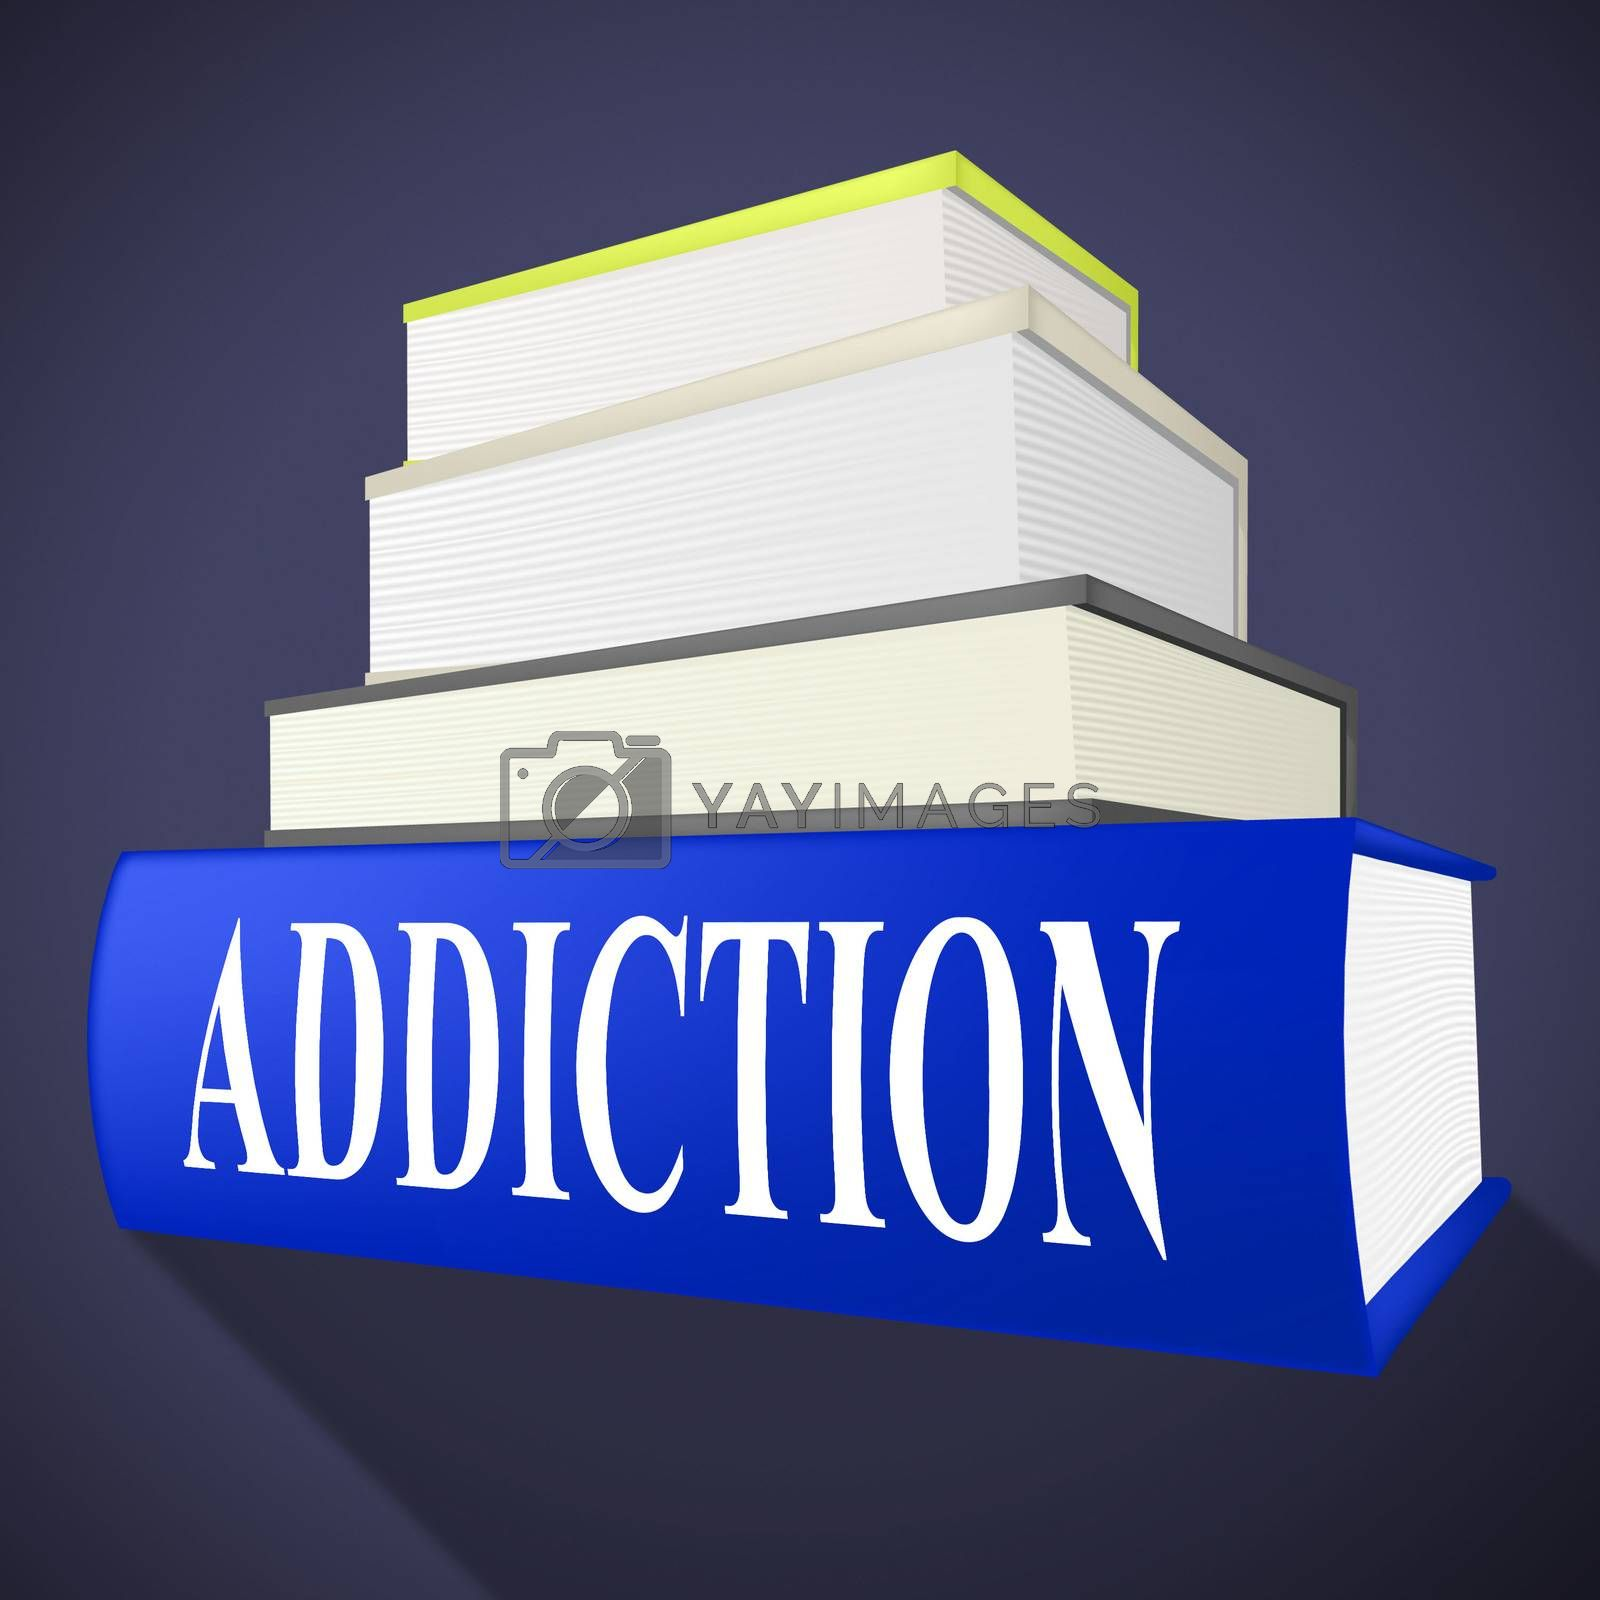 Addiction Book Means Craving Fiction And Books by stuartmiles